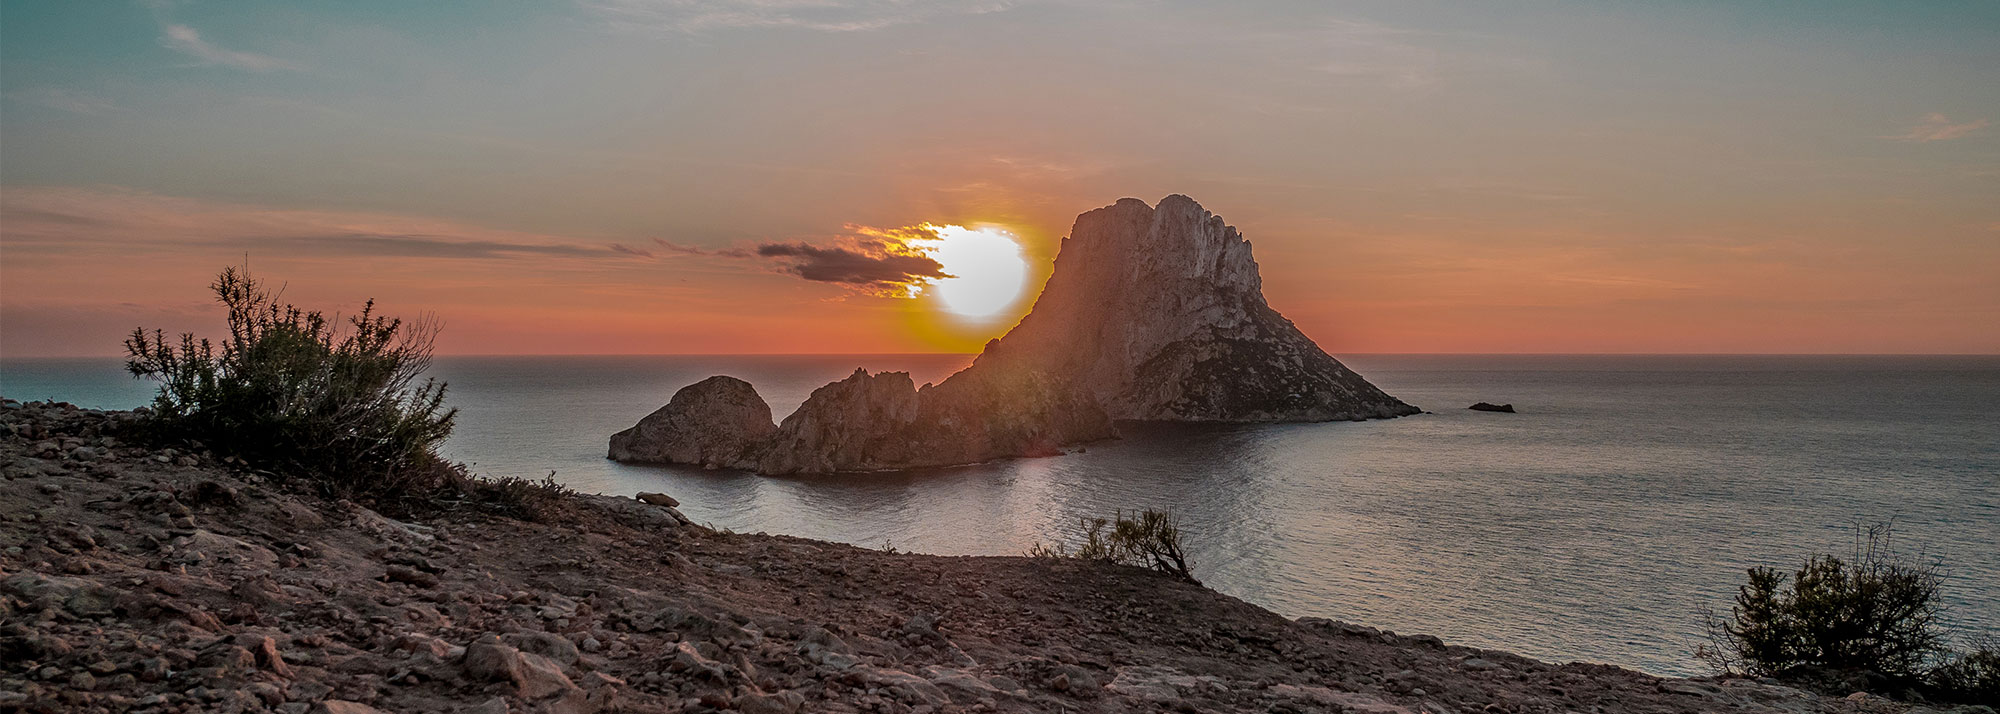 The solo traveller's guide to Ibiza